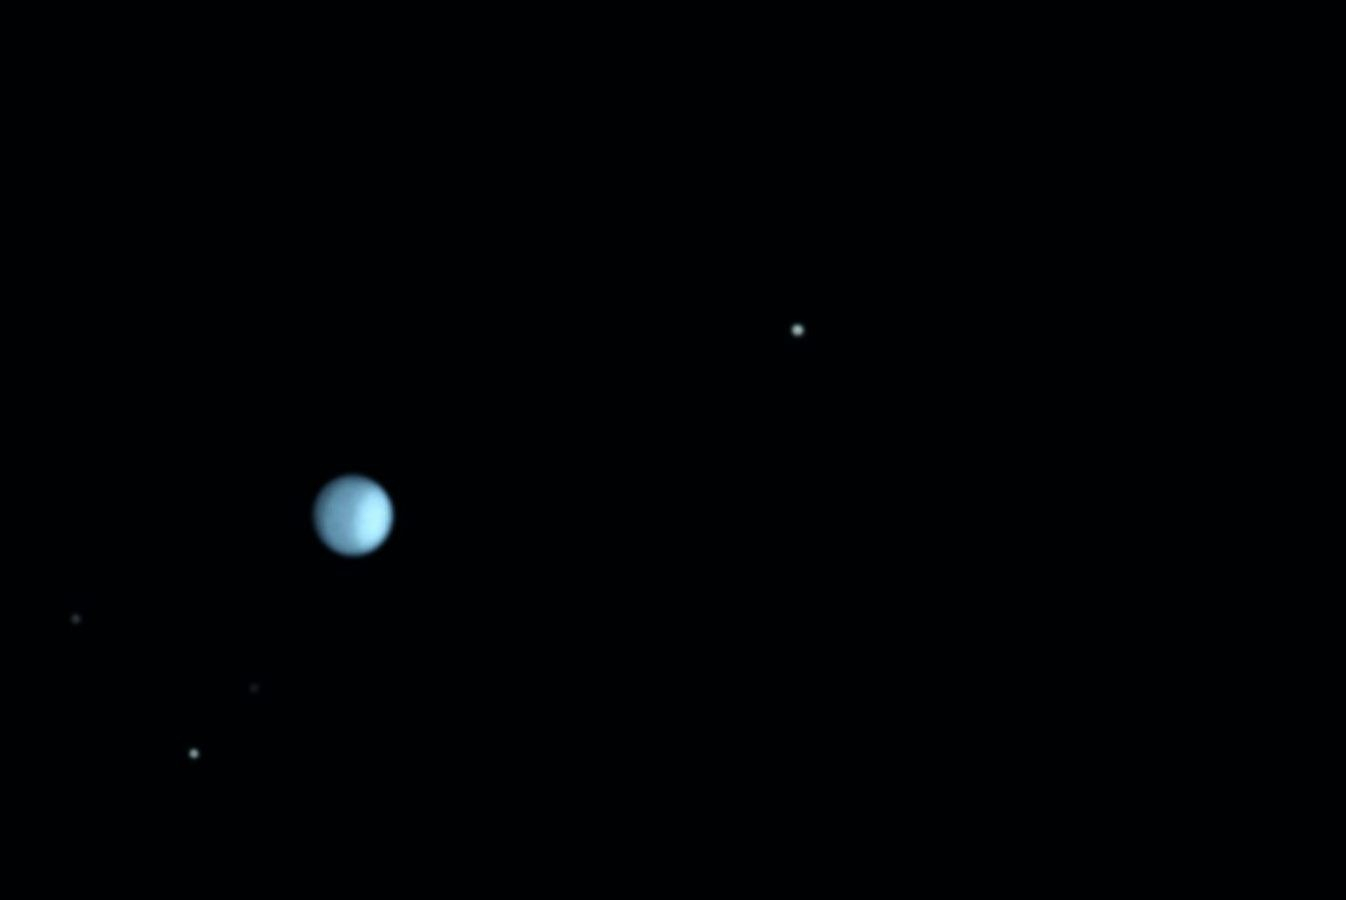 Uranus on 18 December 2017, showing surface details in infrared. The lighter polar region is tipped to the right. The moons were exposed separately from the planet and in visible light, not IR. Credit: Martin Lewis